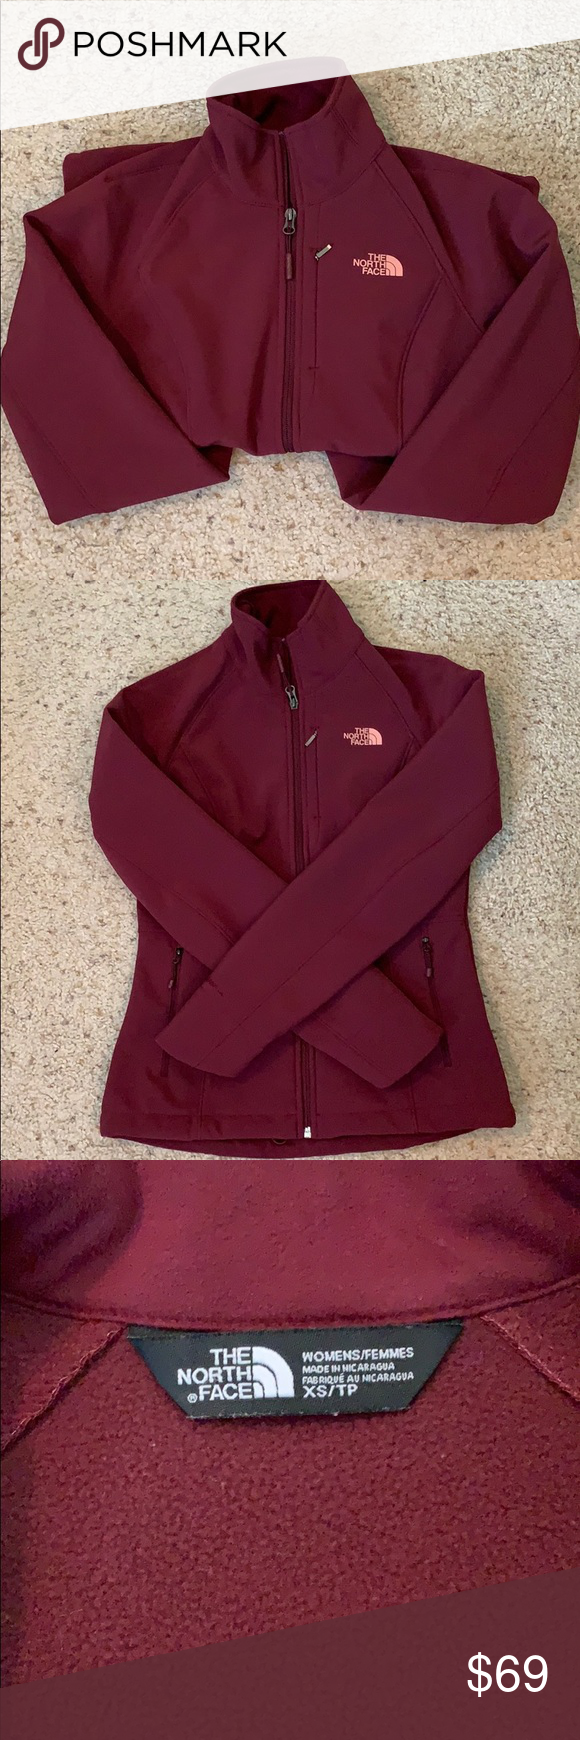 Euc The North Face Apex Jacket Xs Burgundy Euc The North Face Apex Jacket Women S Size Xs Burgundy Soft Shell Rain R Jackets For Women Jackets The North Face [ 1740 x 580 Pixel ]